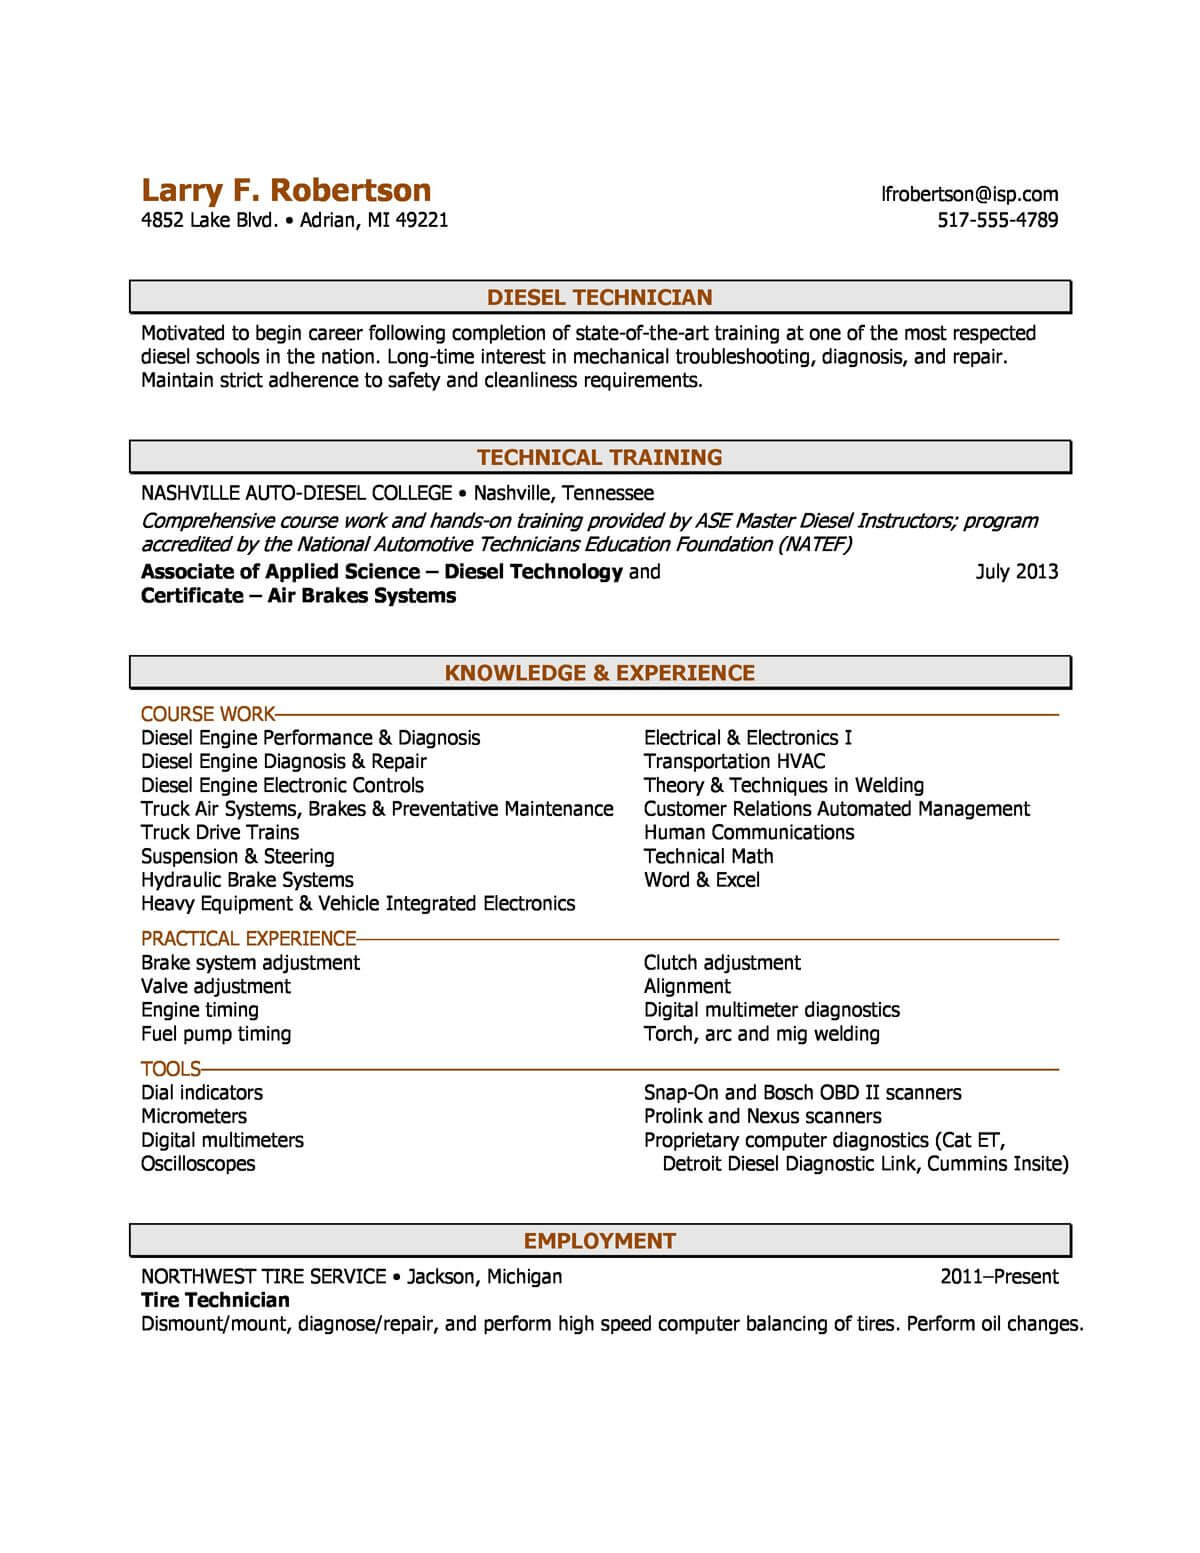 Pinvault On Sample Resumes, Cover Letters And inside Combination Resume Template Word